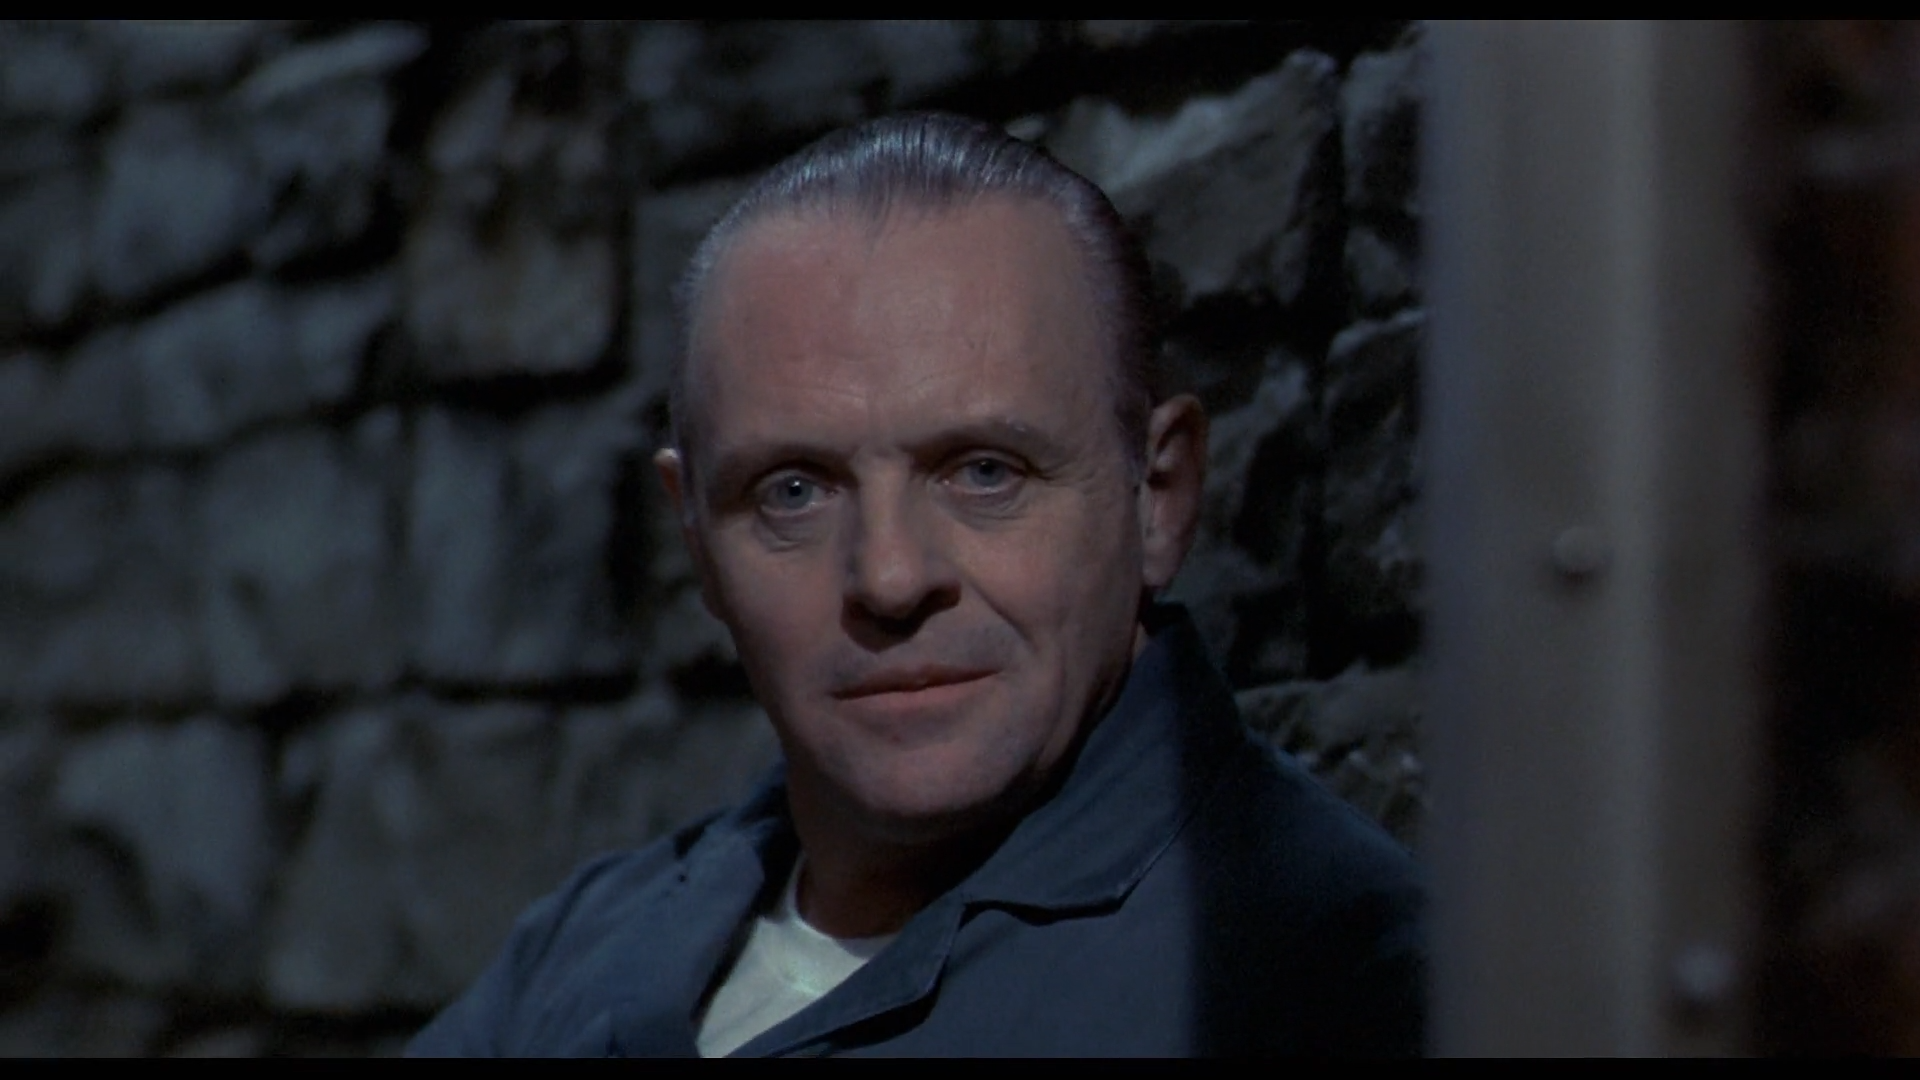 Download The Silence Of The Lambs 1991 Bluray 1080p X264 Ac3 Lxgz